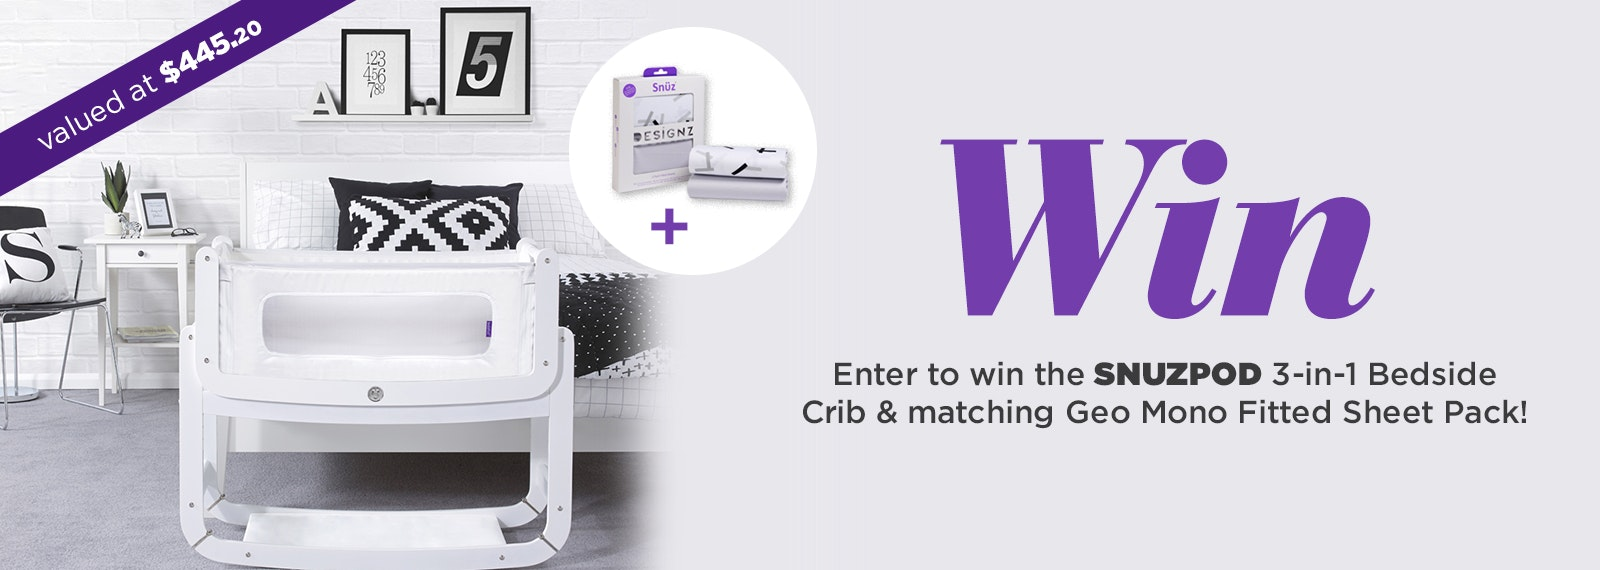 Enter to WIN the SnuzPod 3-in-1 Bedside Crib & matching Geo Mono Fitted Sheet Pack!